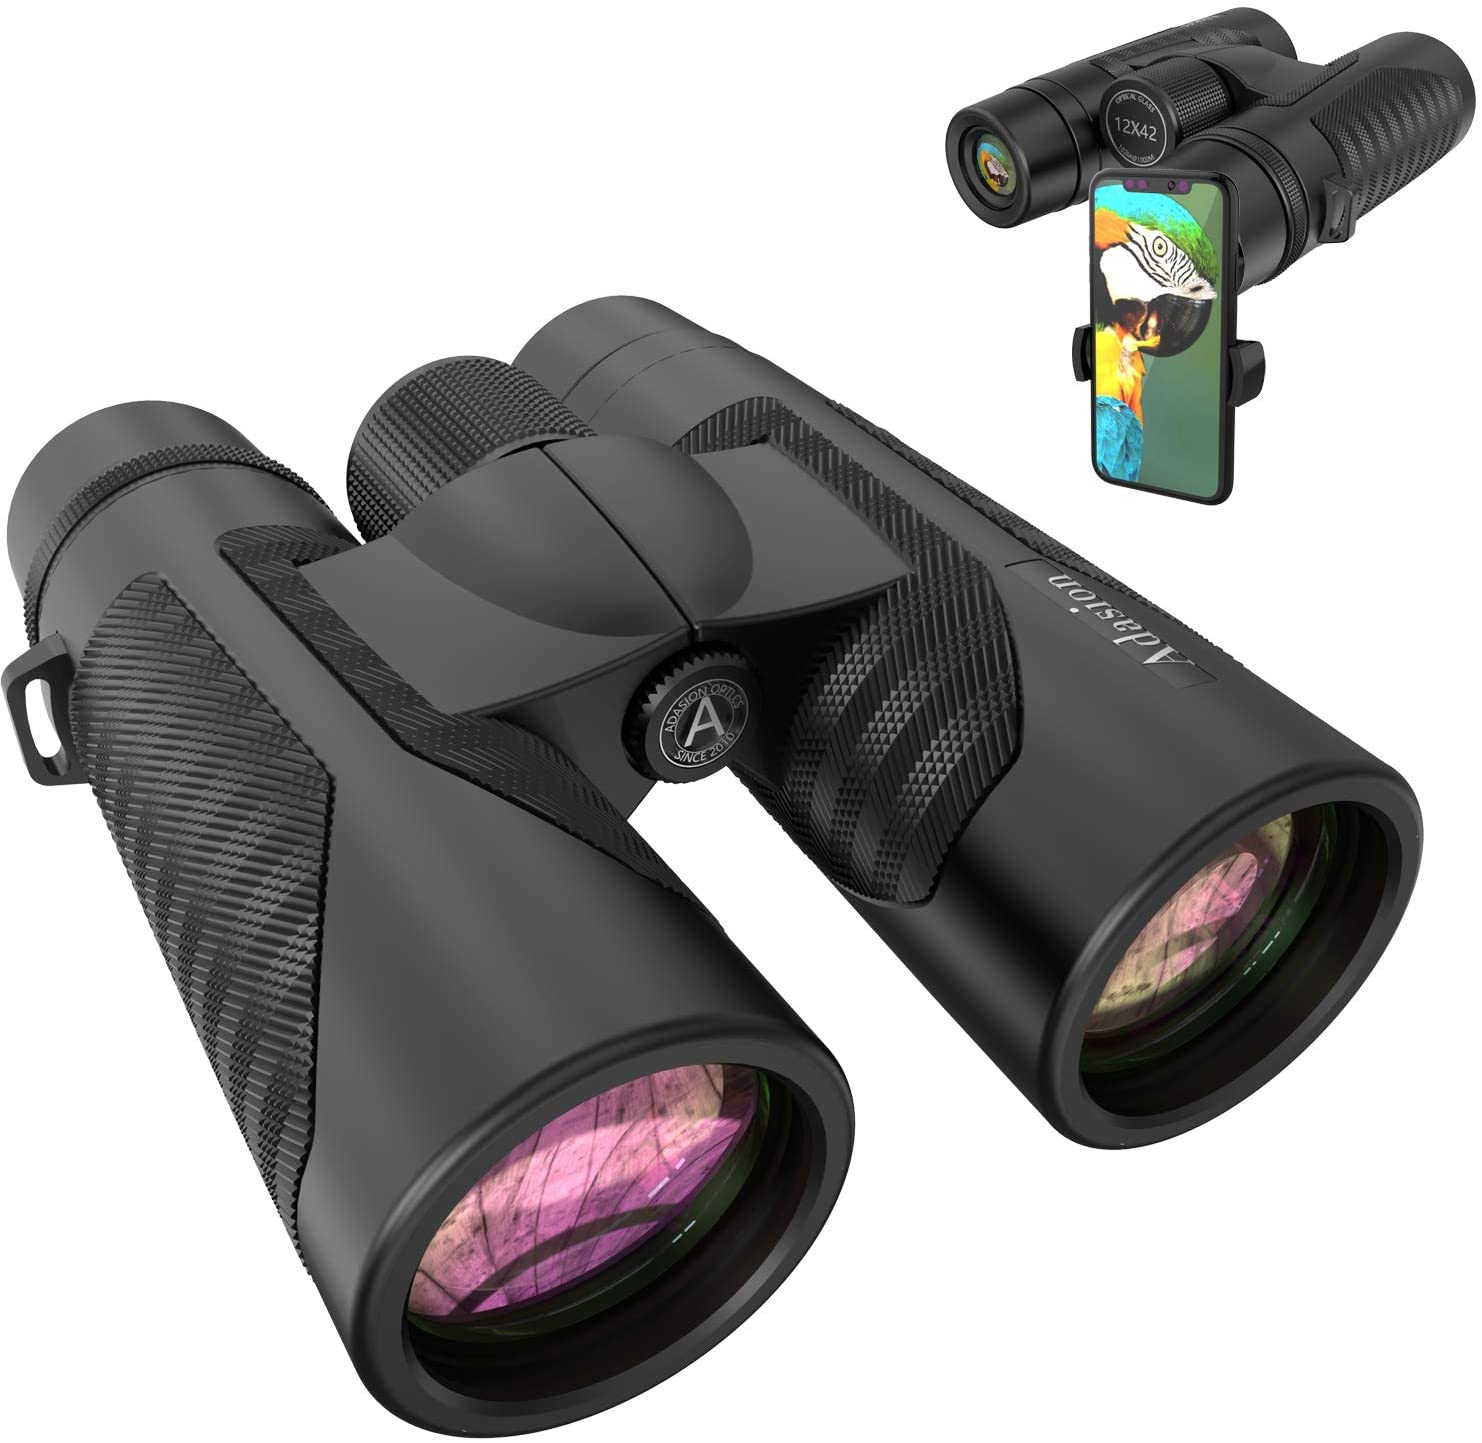 Adasion Binoculars with New Smartphone Photograph Adapter